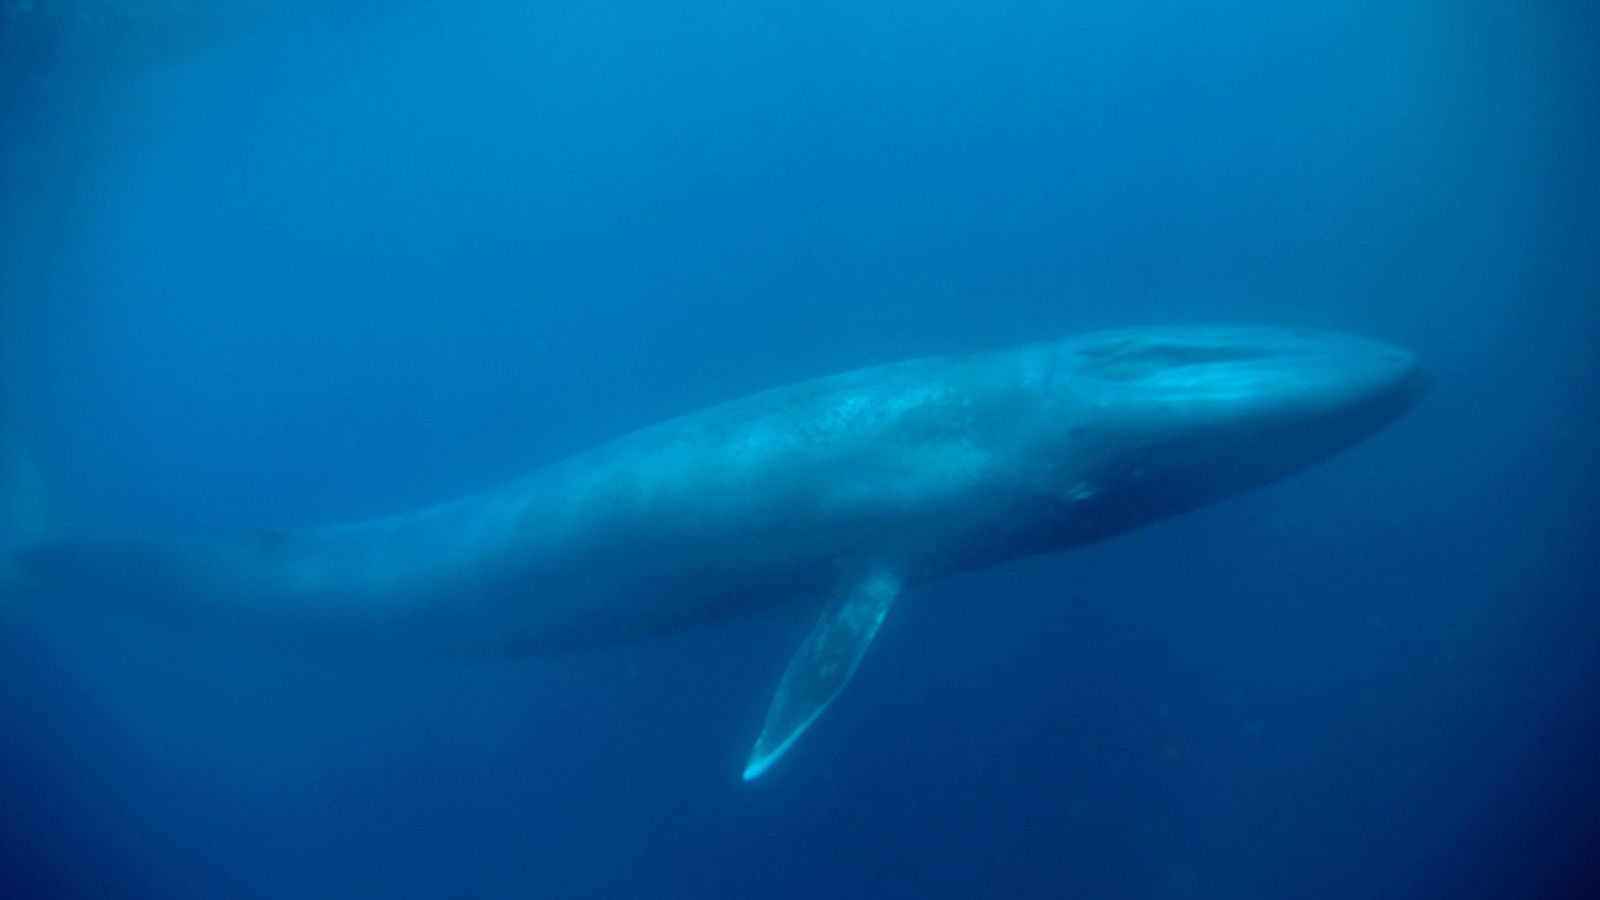 Blue whales are highly endangered and poorly understood, but scientists hope to decipher more about them ...